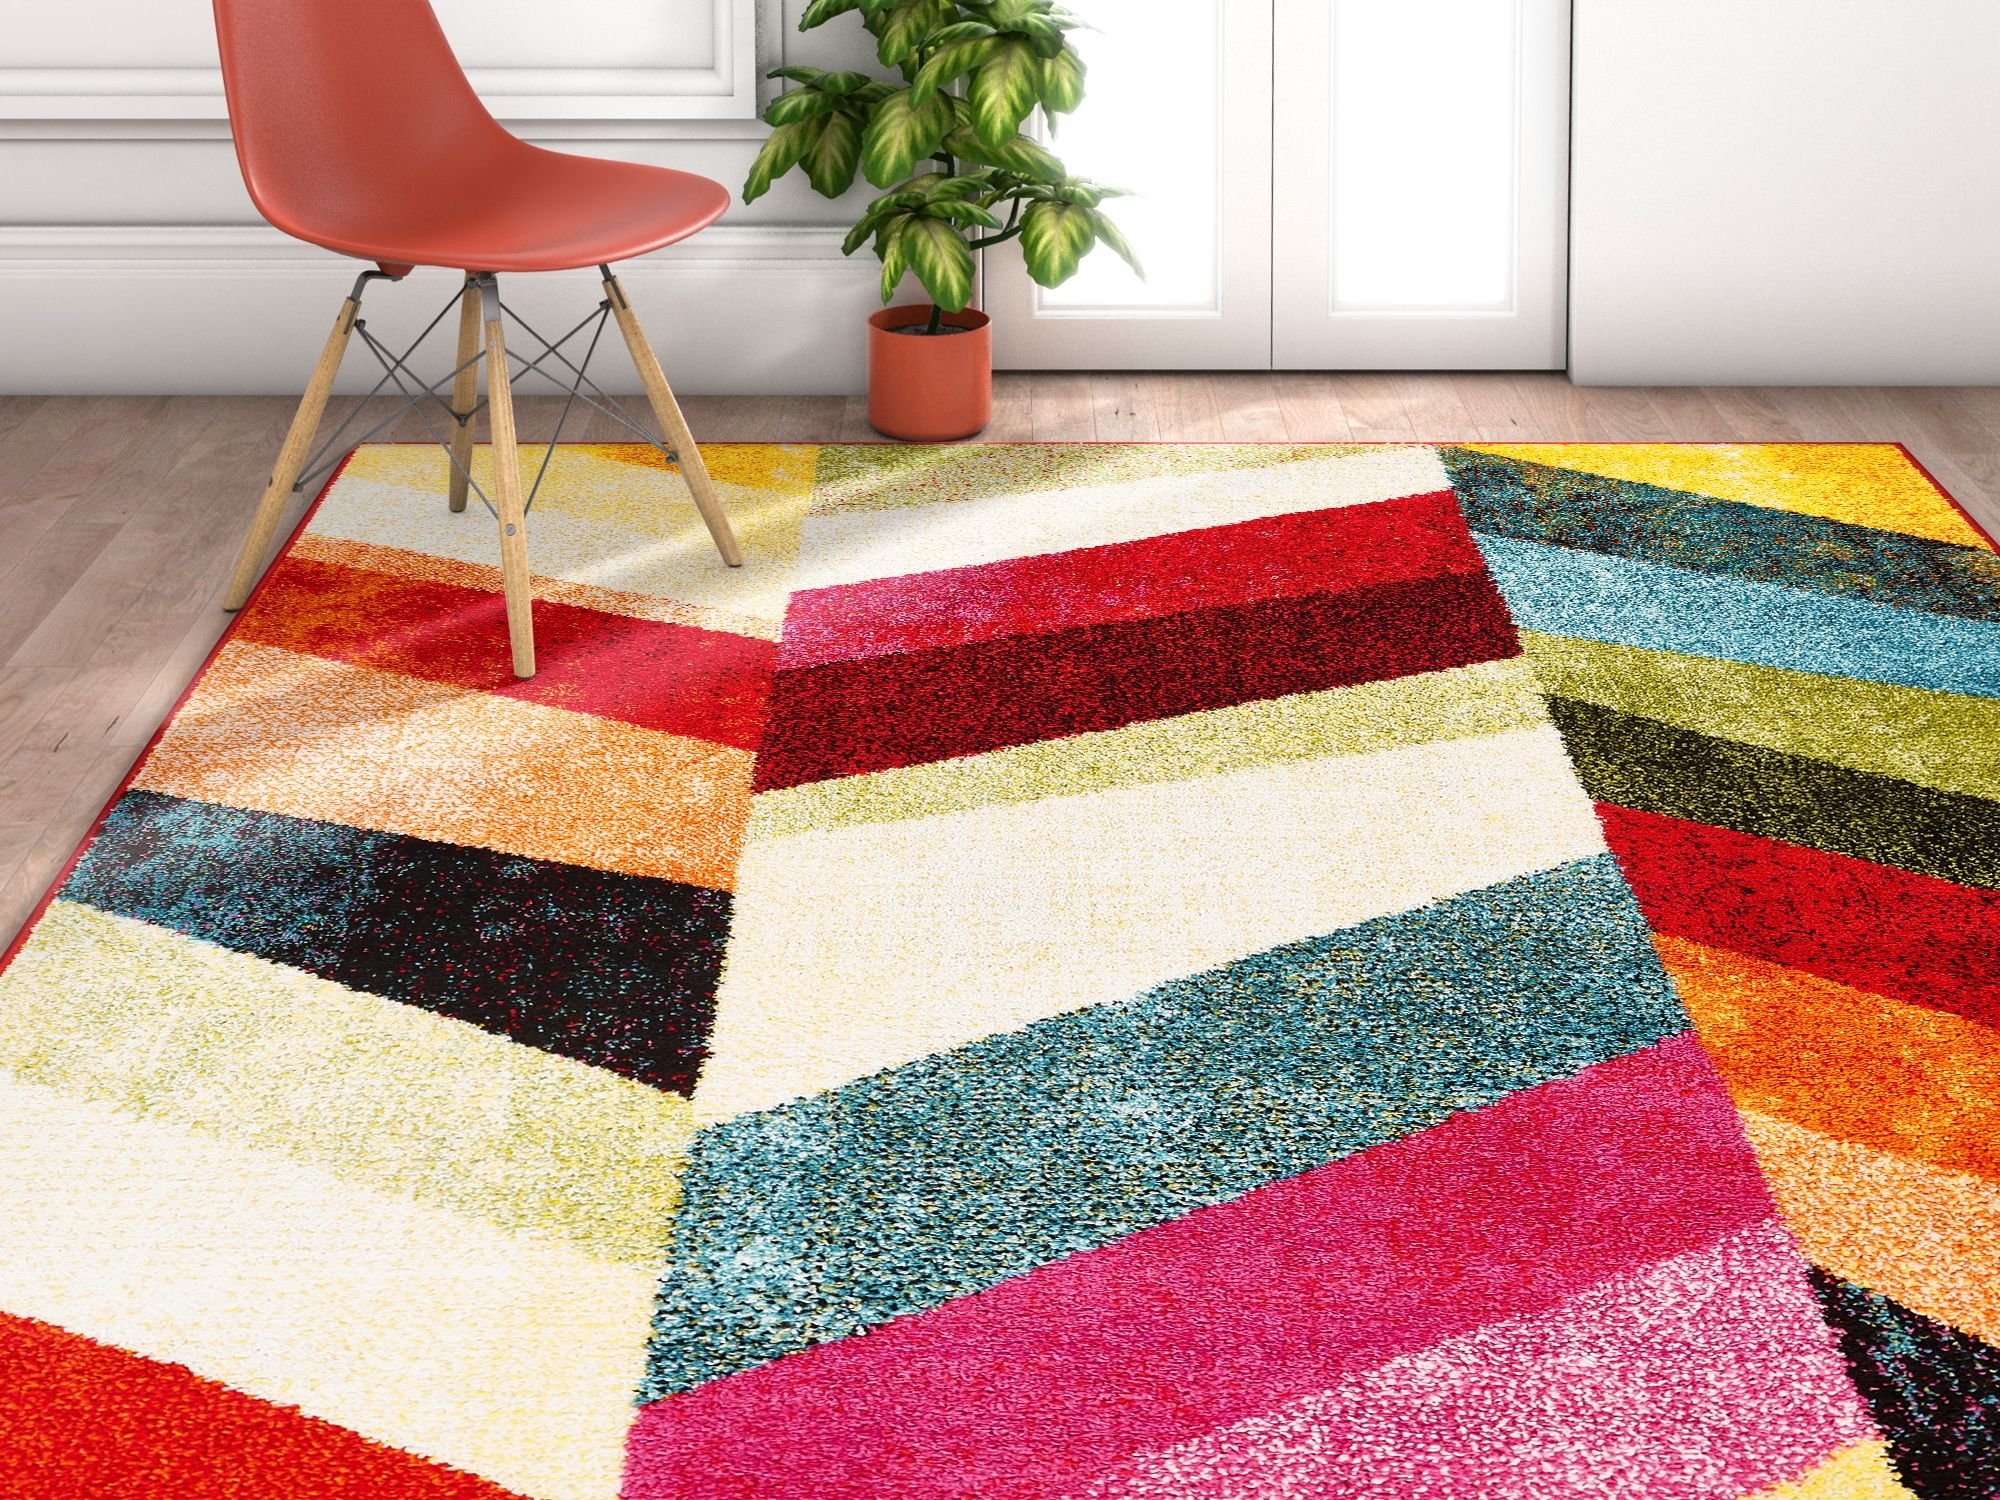 Well Woven Imagine Chevron Modern Geometric Blocks Pattern 8x11 (7'10'' x 10'6) Area Rug Soft Shed Free Easy to Clean Stain Resistant